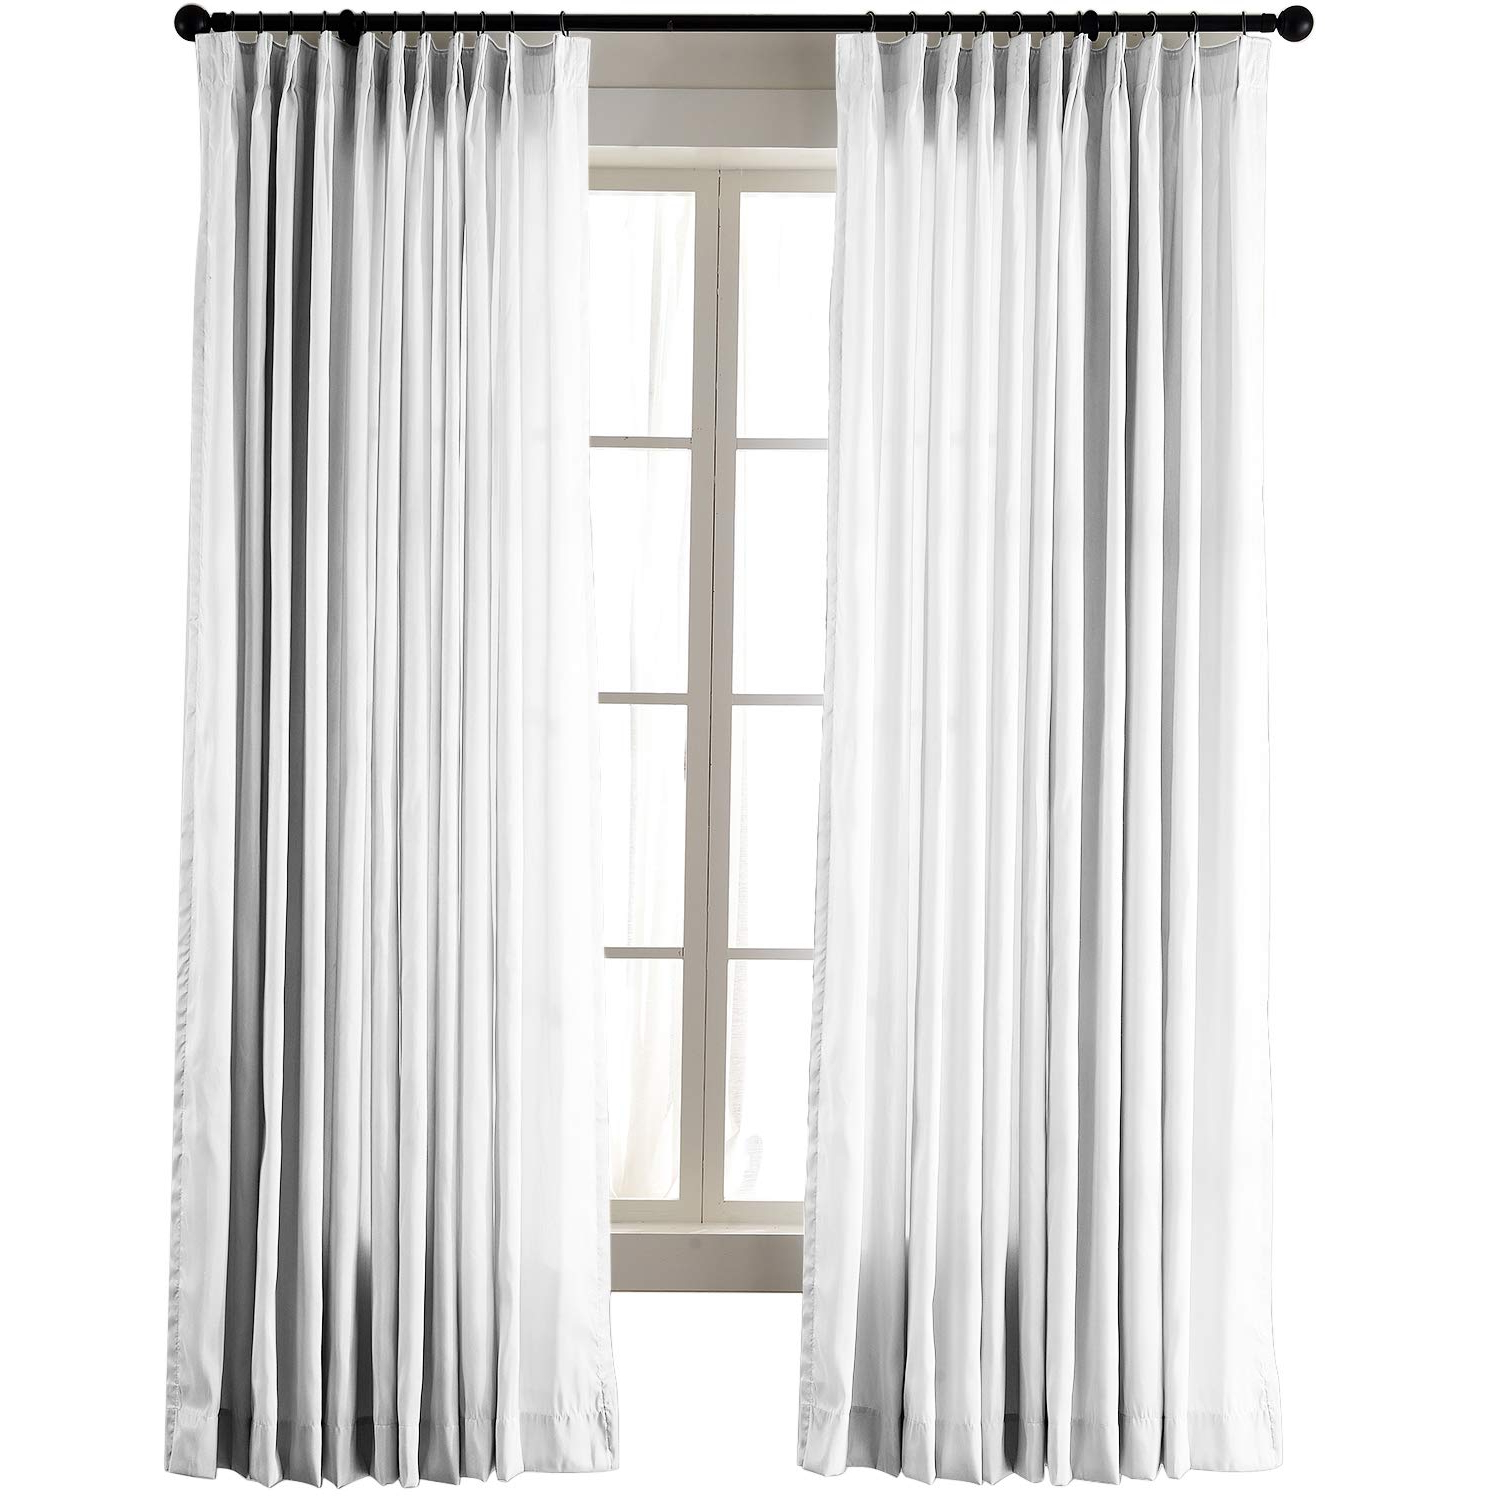 "Best And Newest Chadmade Vintage Textured Faux Dupioni Silk Drape Curtain Panel Pinch Pleated 72"" W X 84"" L With White Blackout Lined, White Ivory In Vintage Faux Textured Dupioni Silk Curtain Panels (View 4 of 20)"